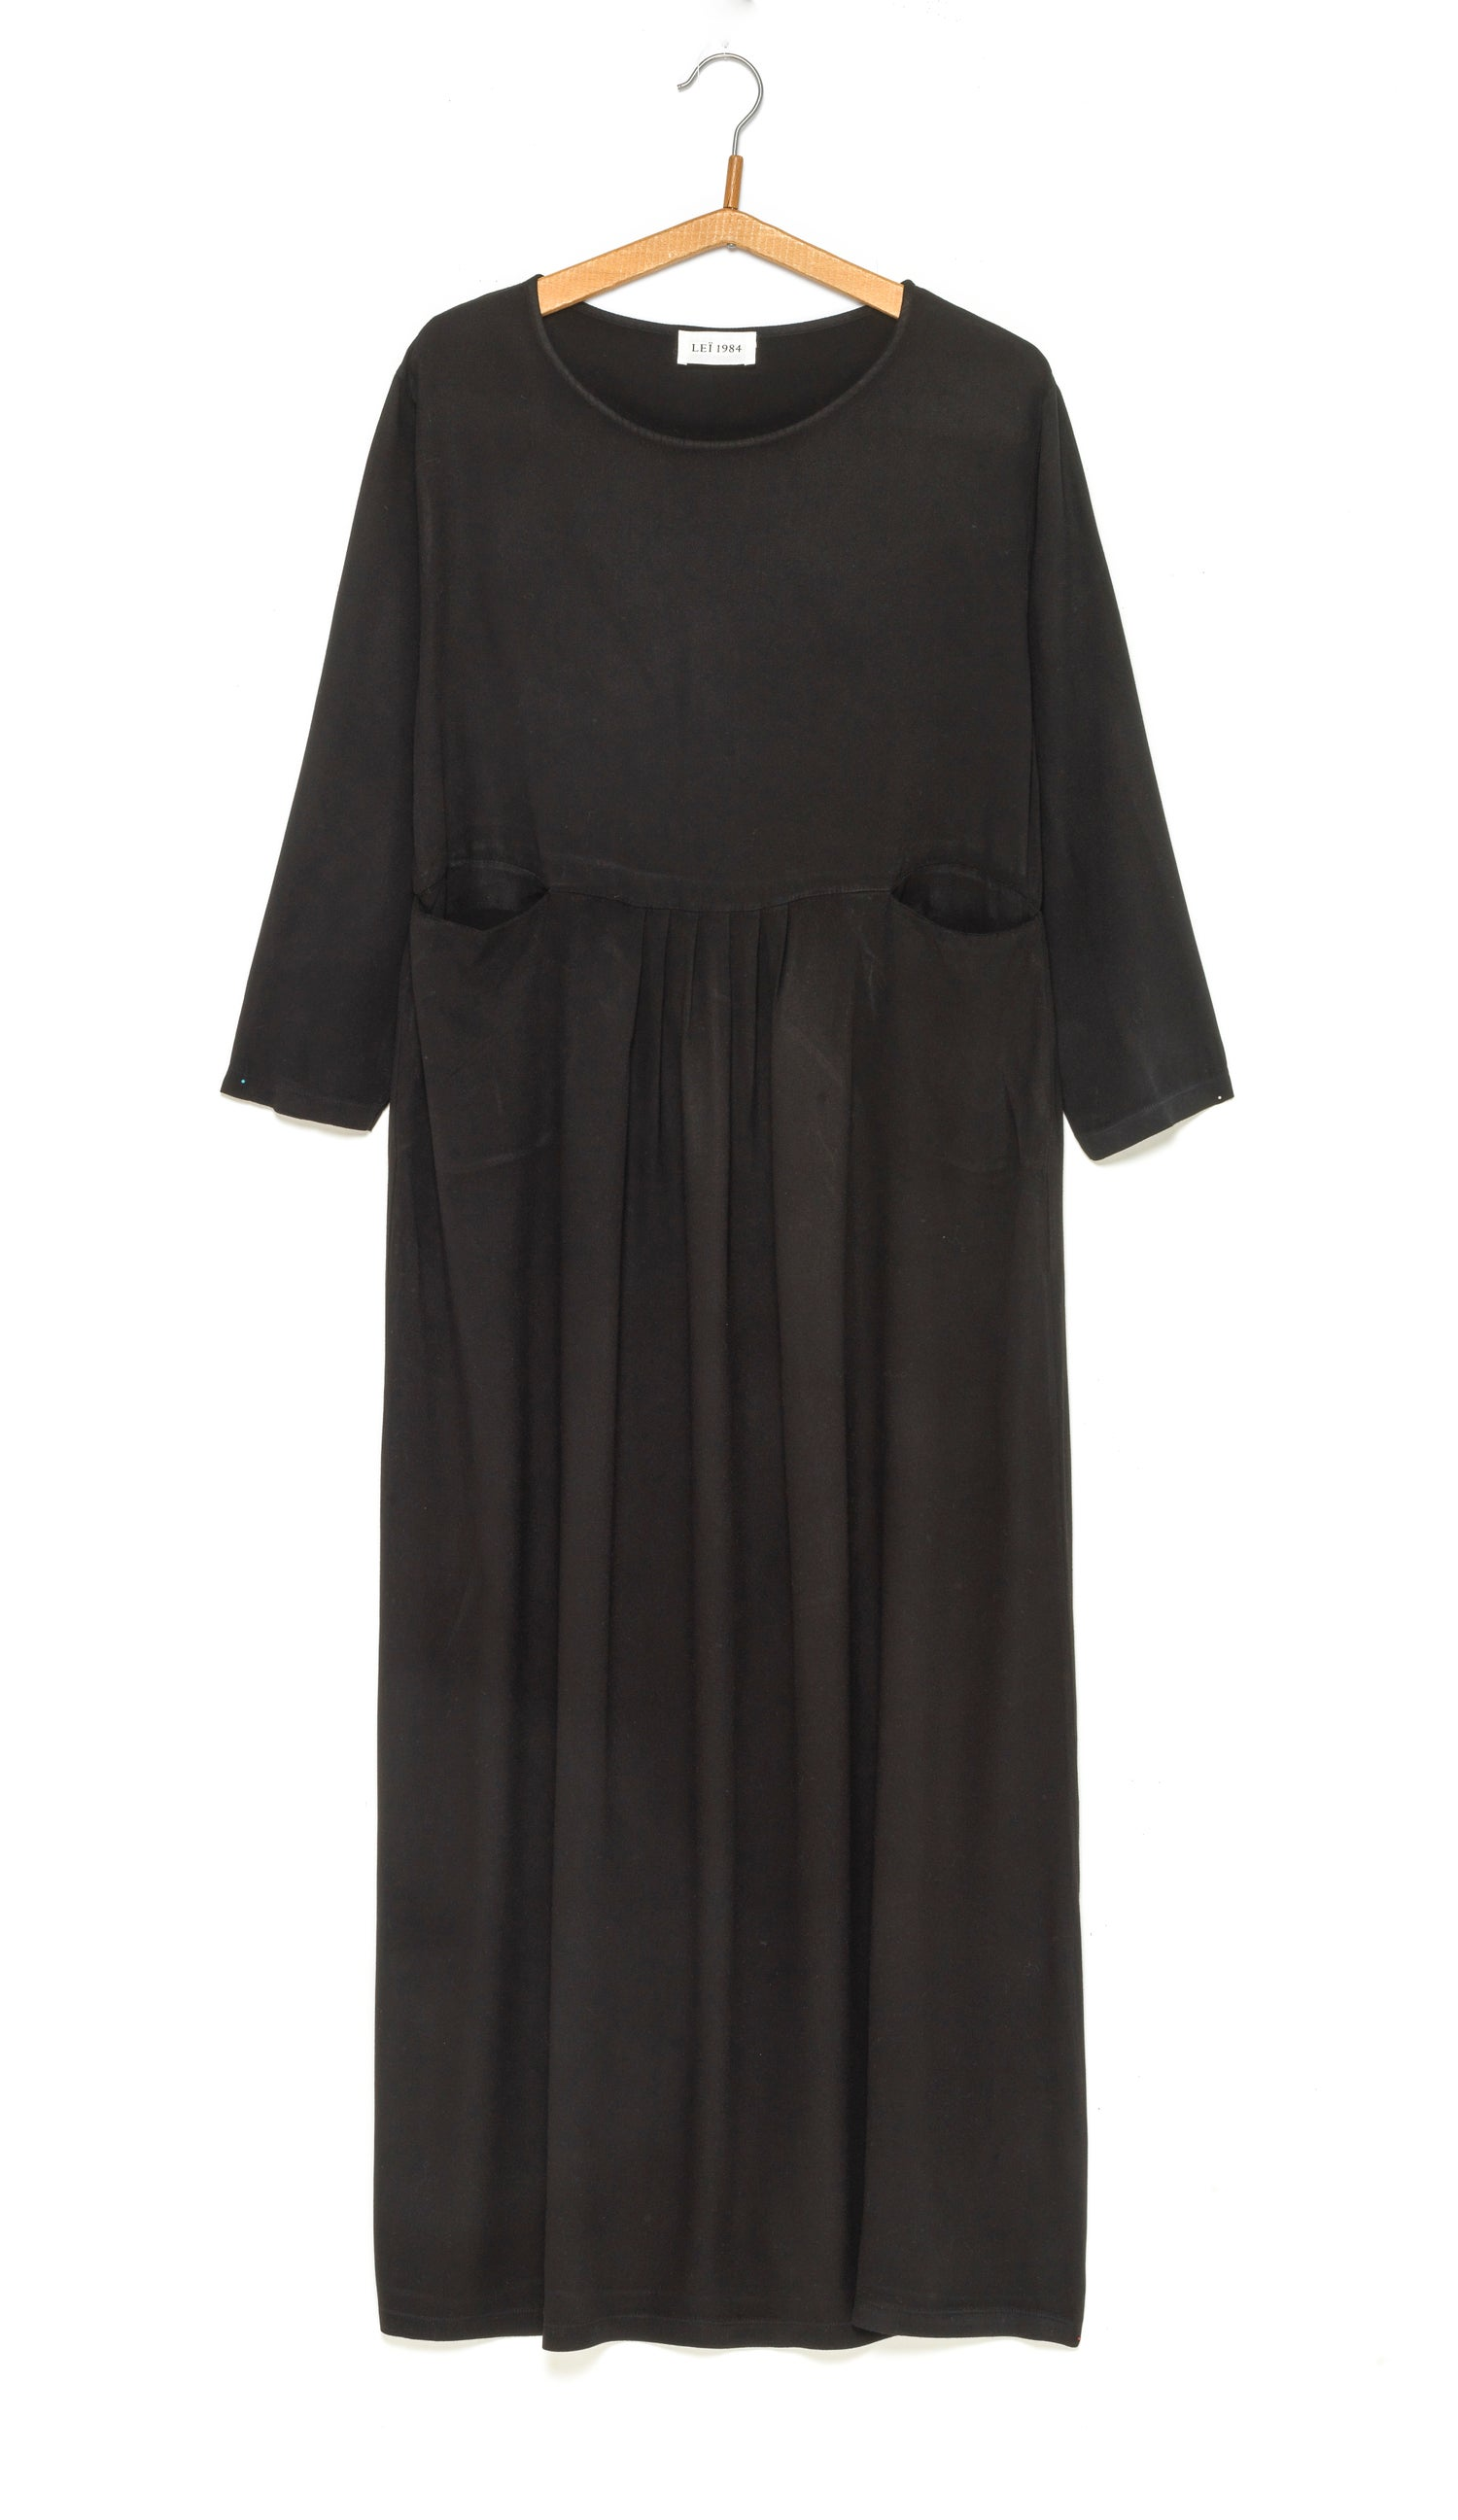 Image of Robe longue Twill viscose LUCIA 149€ -50%